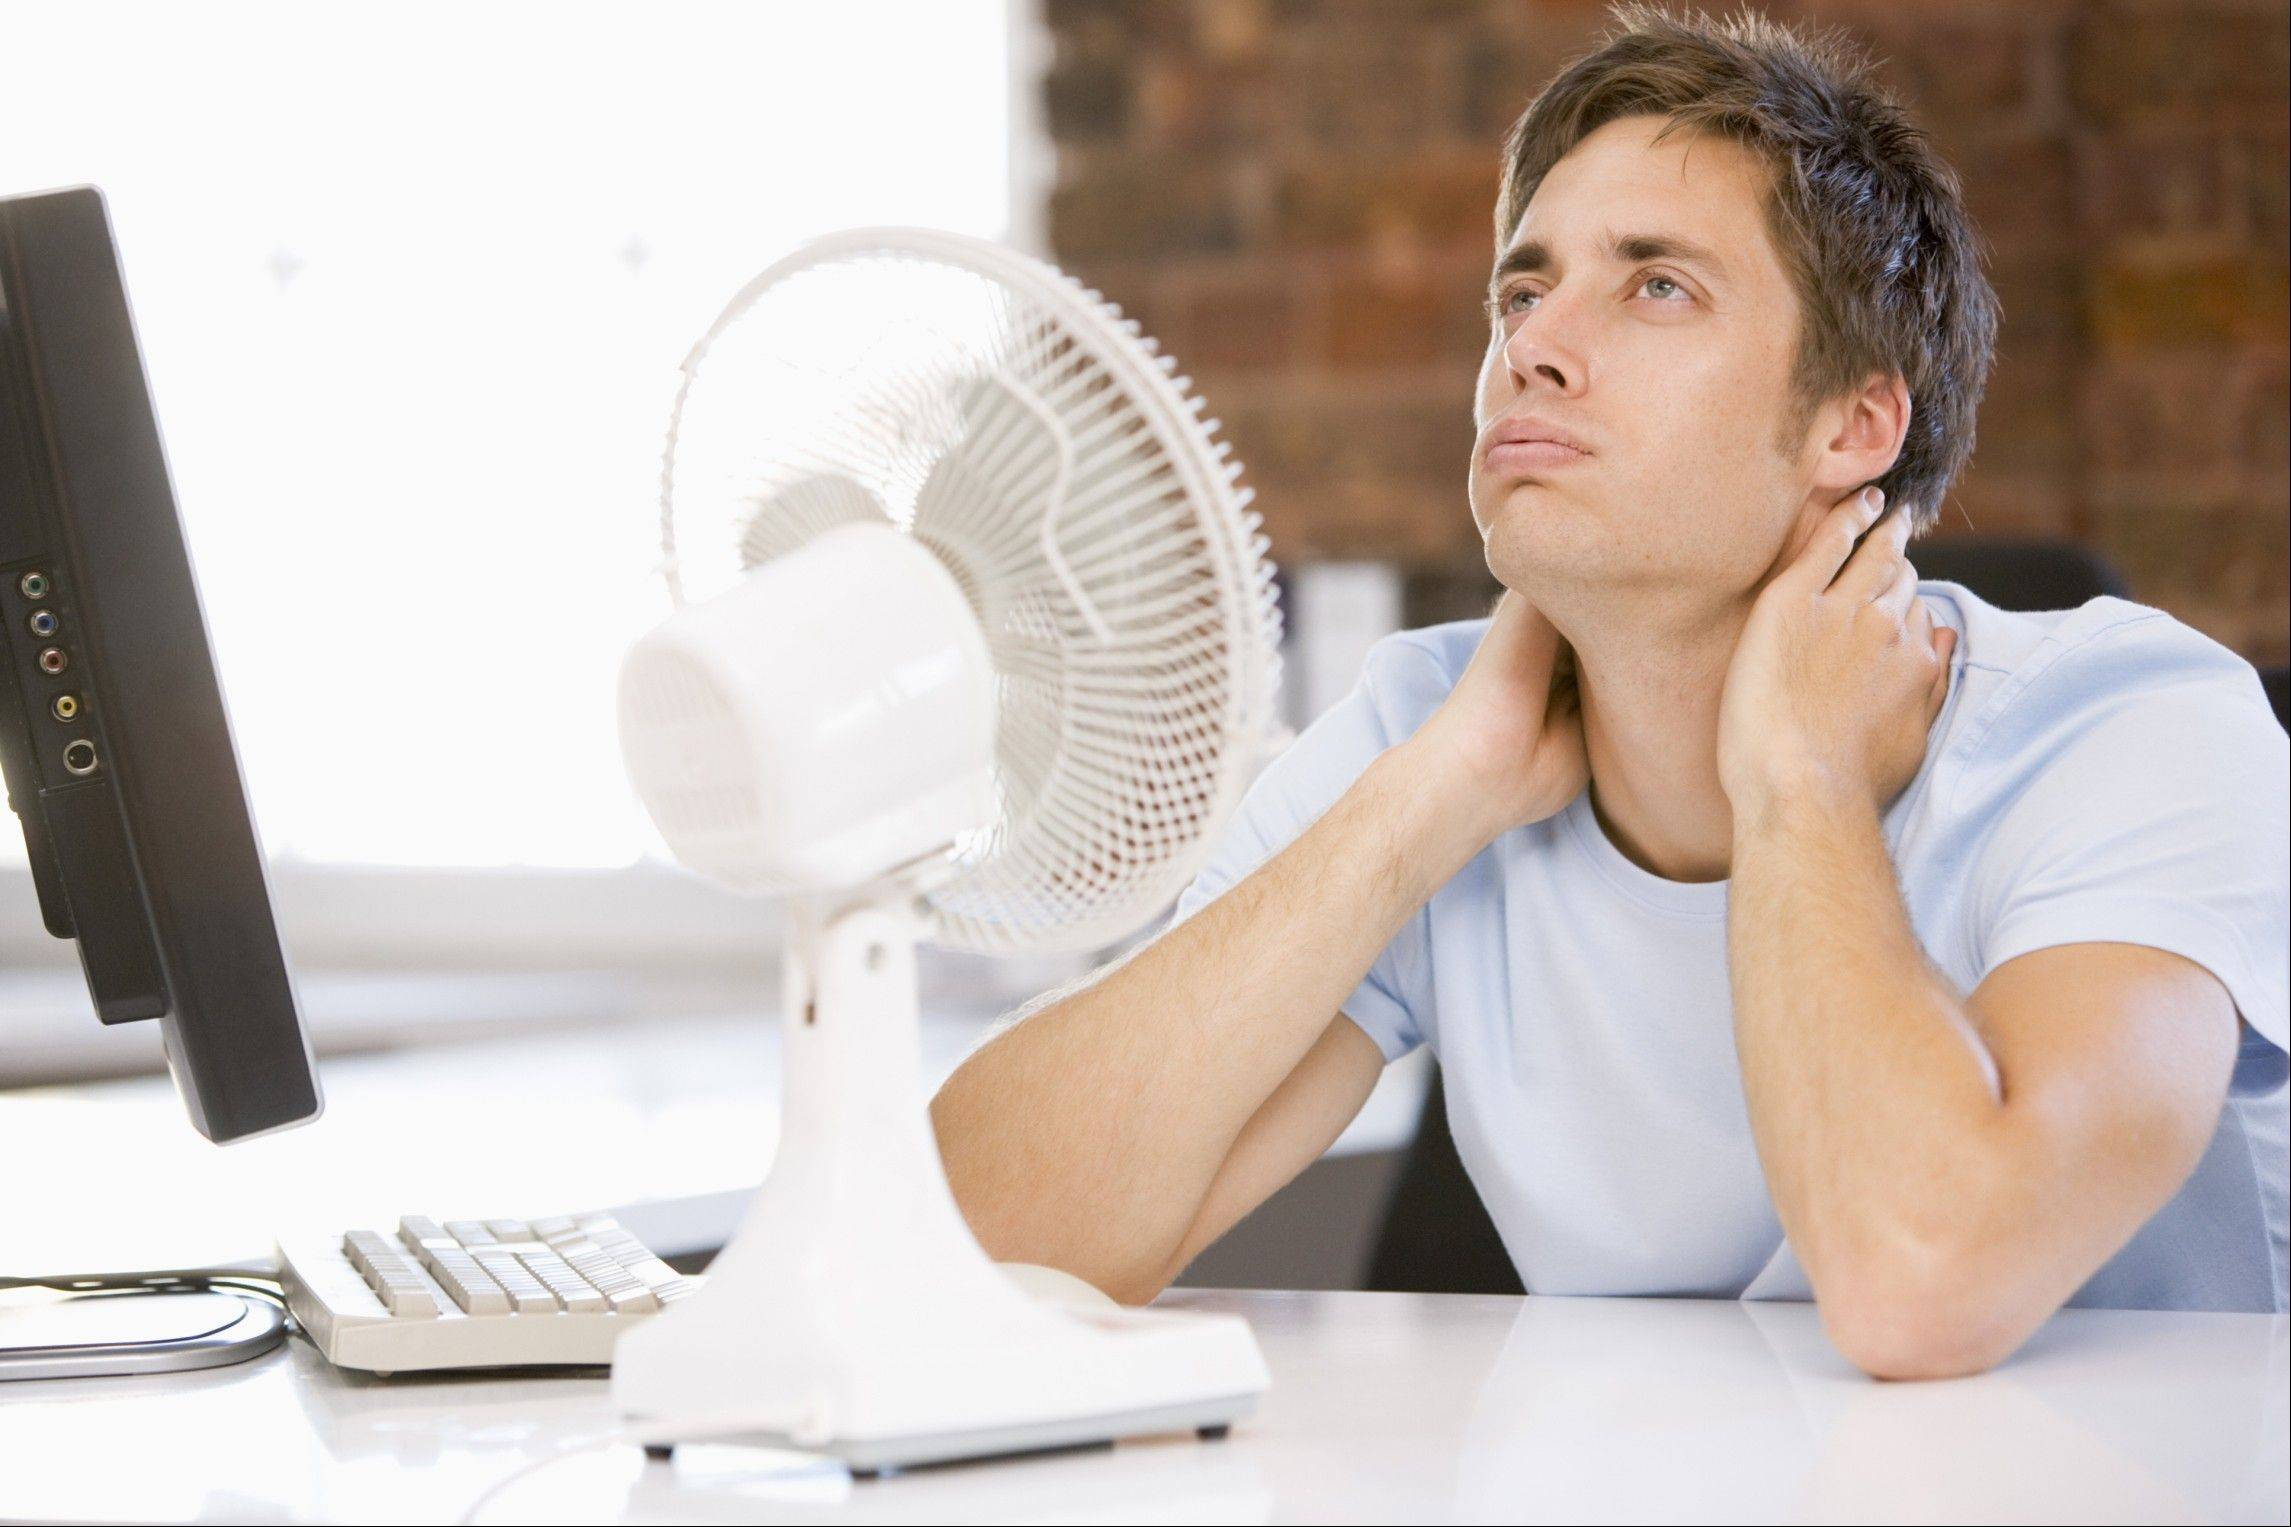 Using a fan may actually make you feel warmer if the temperature is above 95 degrees Fahrenheit.